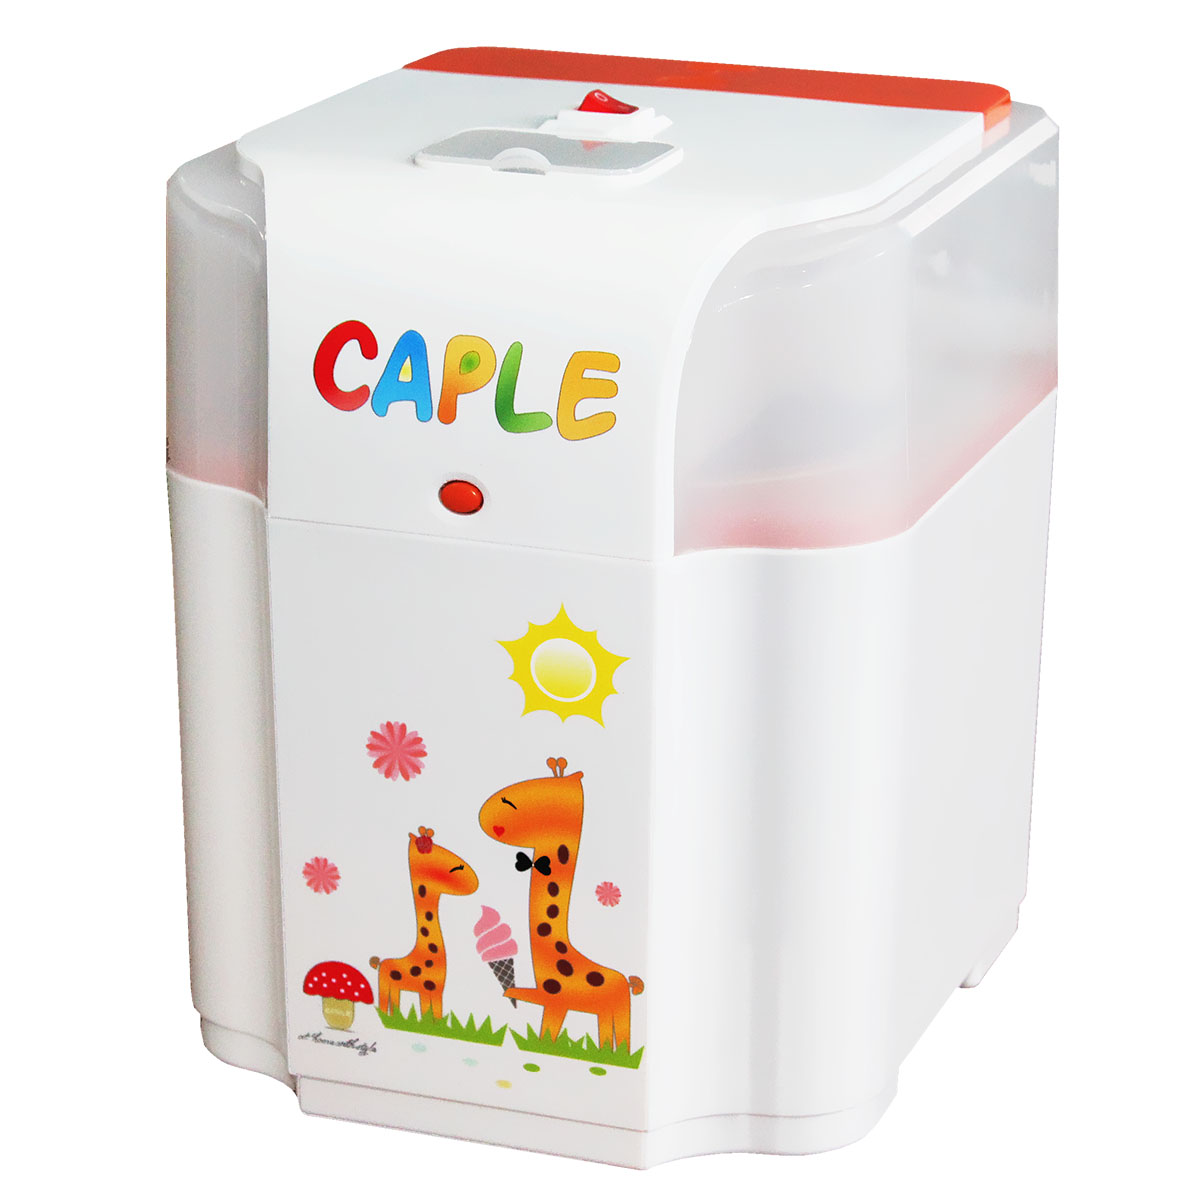 Home Automatic Cute Design Ice Cream Machine Small DIY Fruit Ice Cream Maker One Key Easy Operation Soft Ice Cone ToolHome Automatic Cute Design Ice Cream Machine Small DIY Fruit Ice Cream Maker One Key Easy Operation Soft Ice Cone Tool